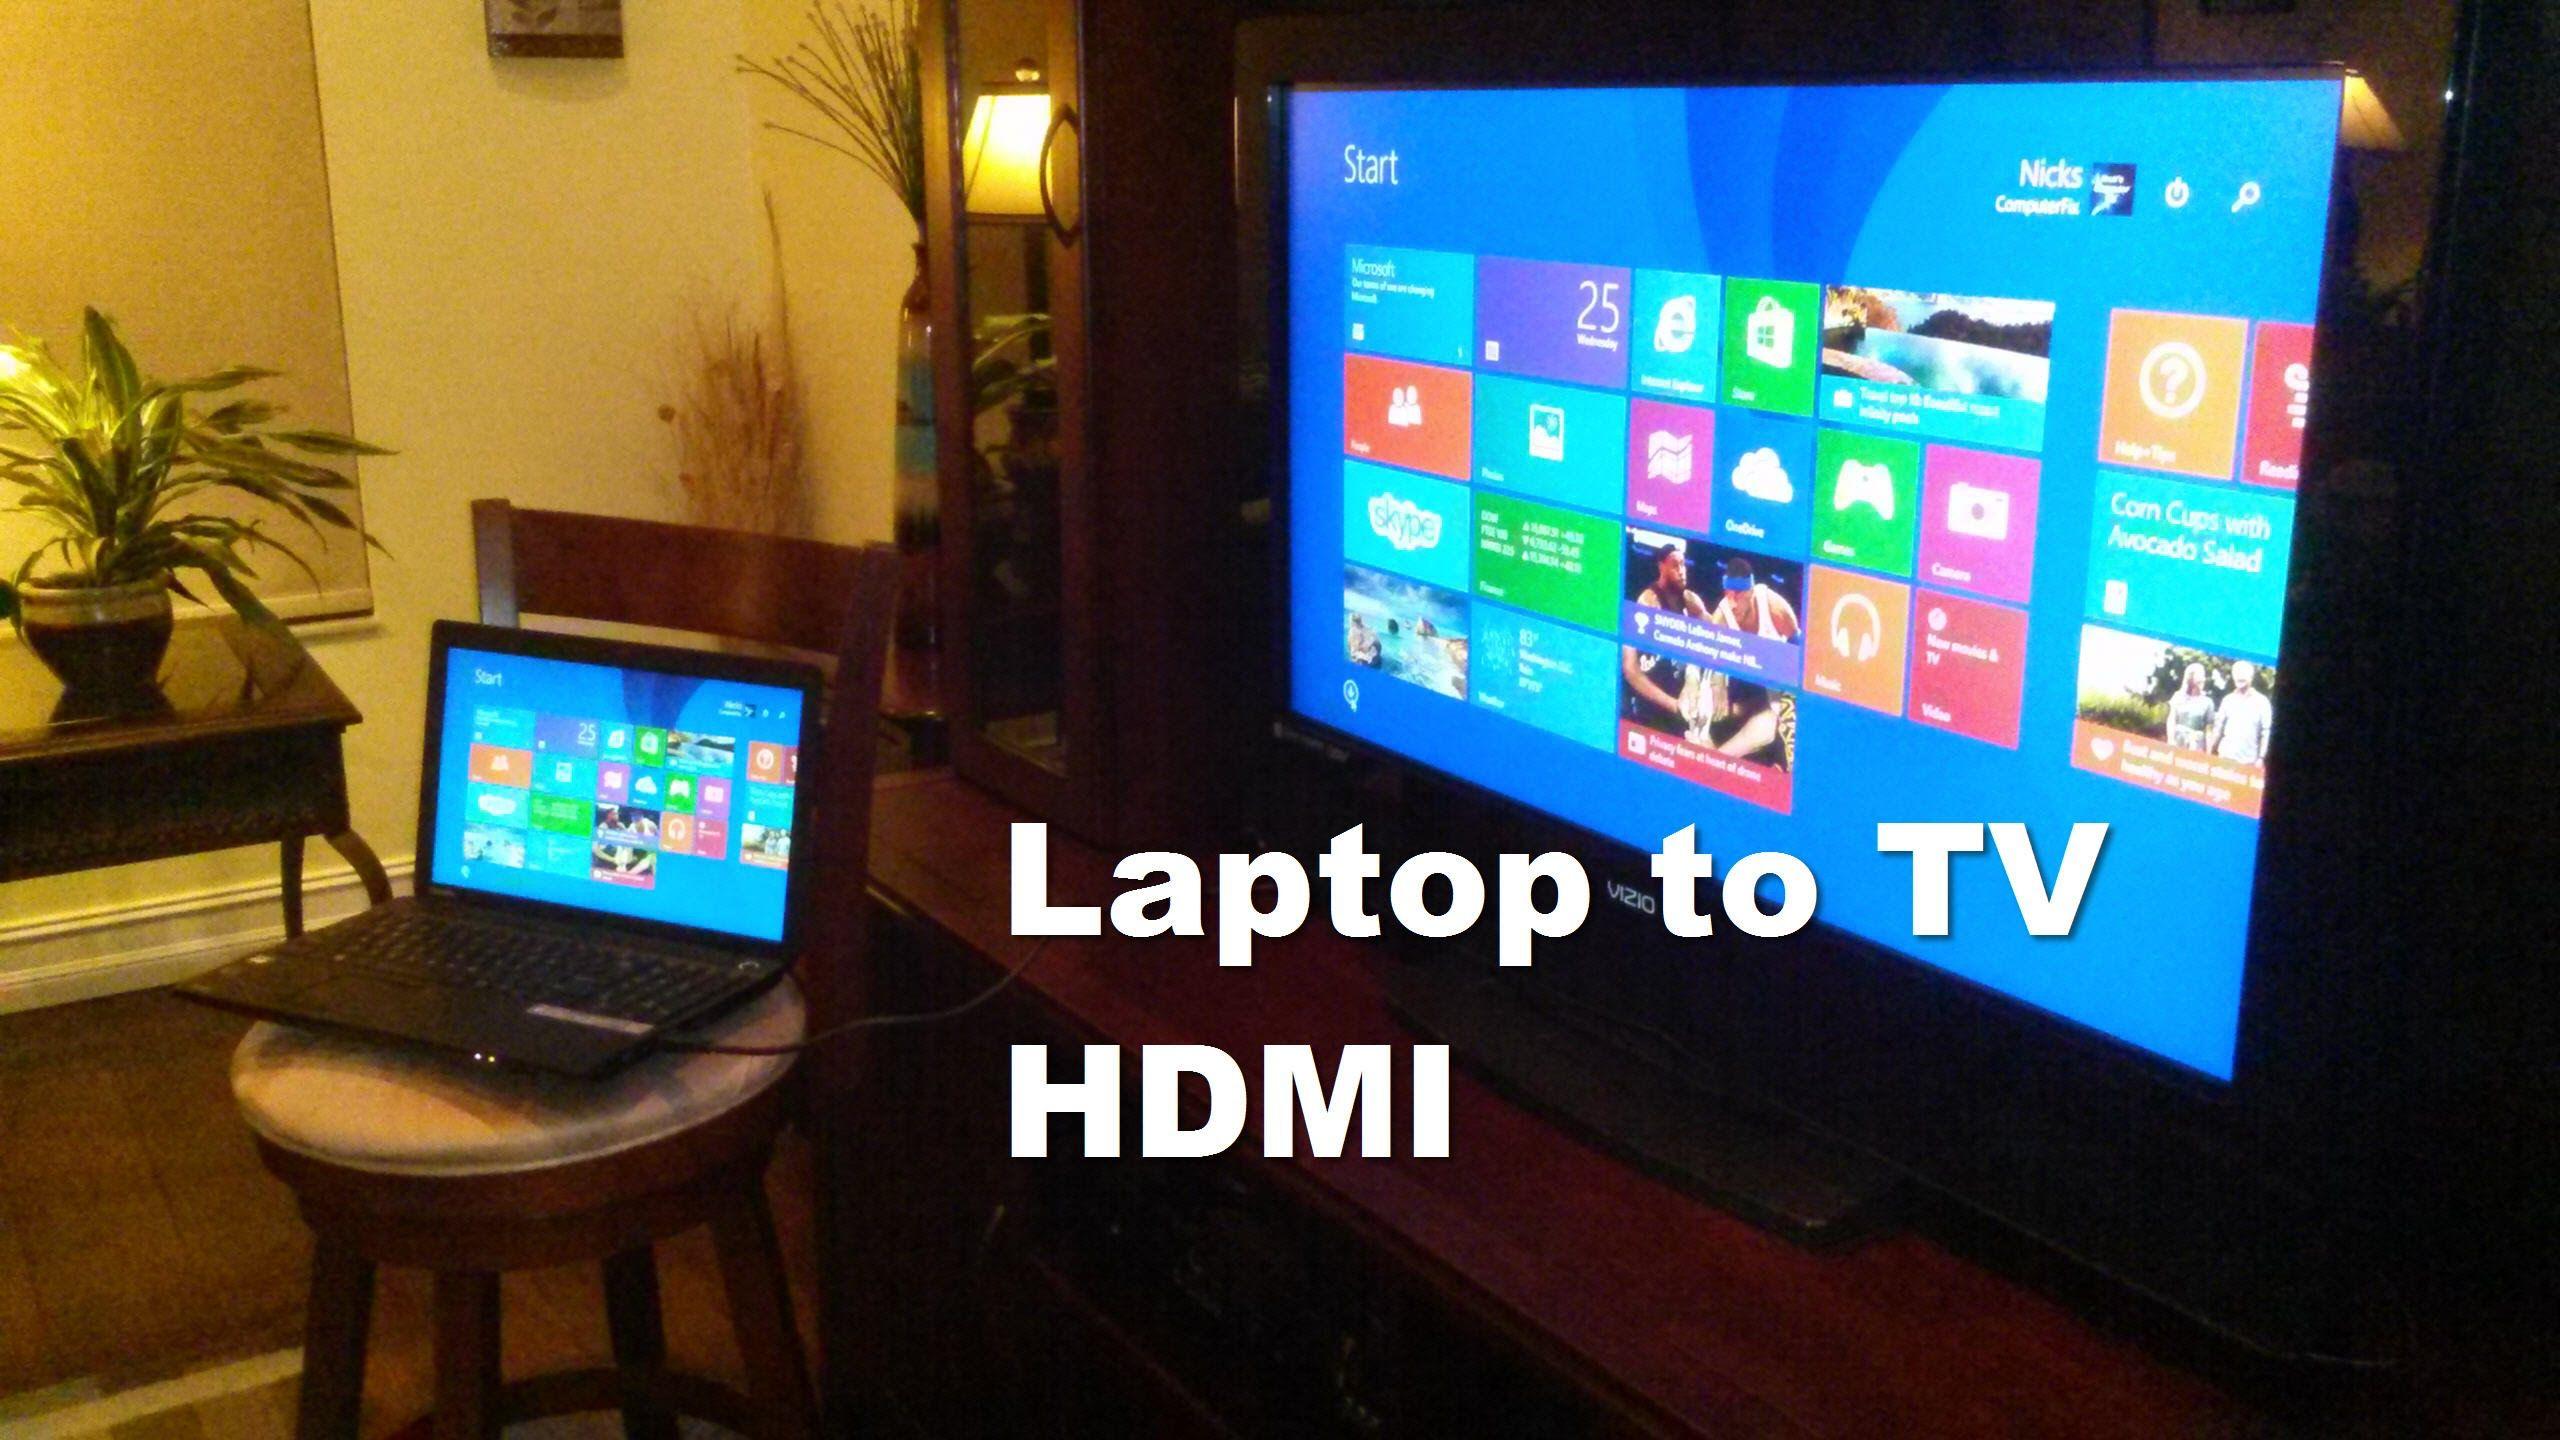 This video shows how to connect Laptop to HDMI TV which